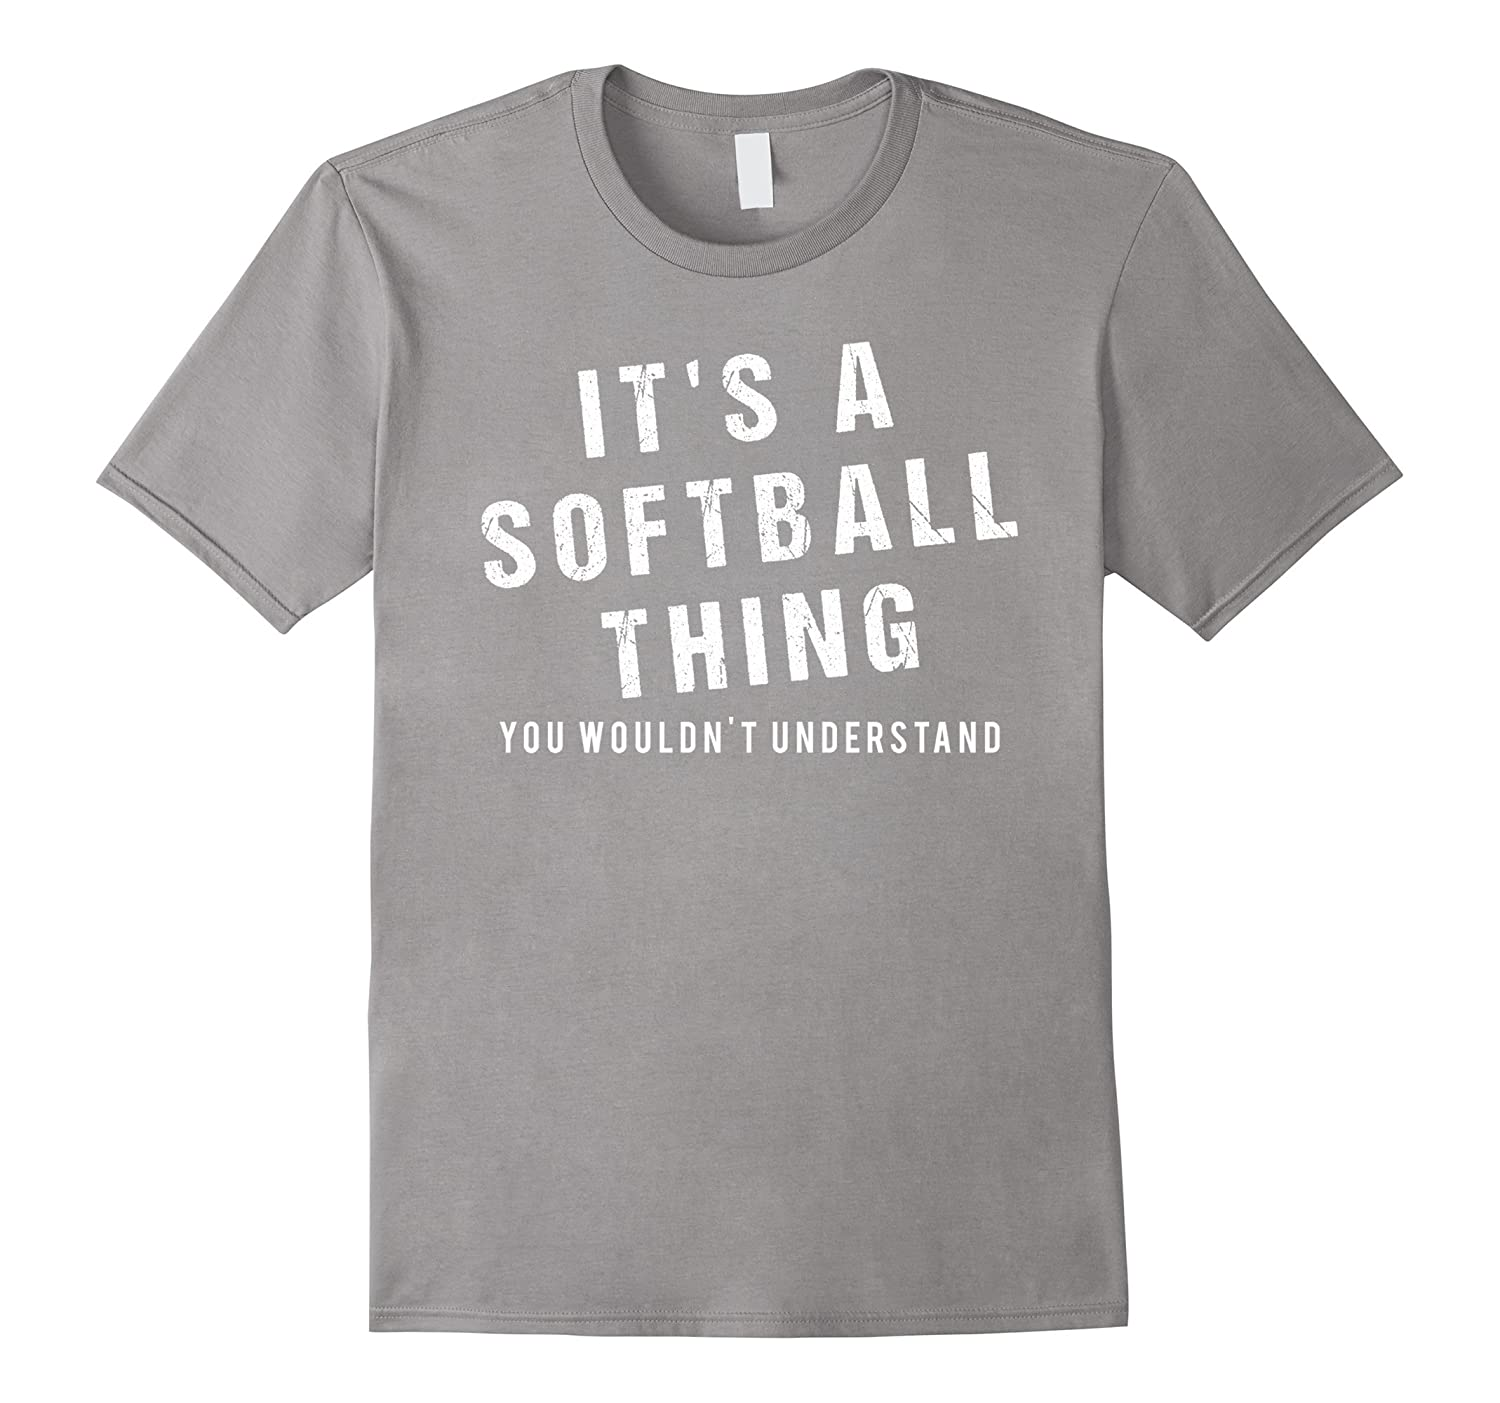 55a6a02a It's A Softball Thing Funny Cool Cute Saying T Shirt-Teevkd – Teevkd.com